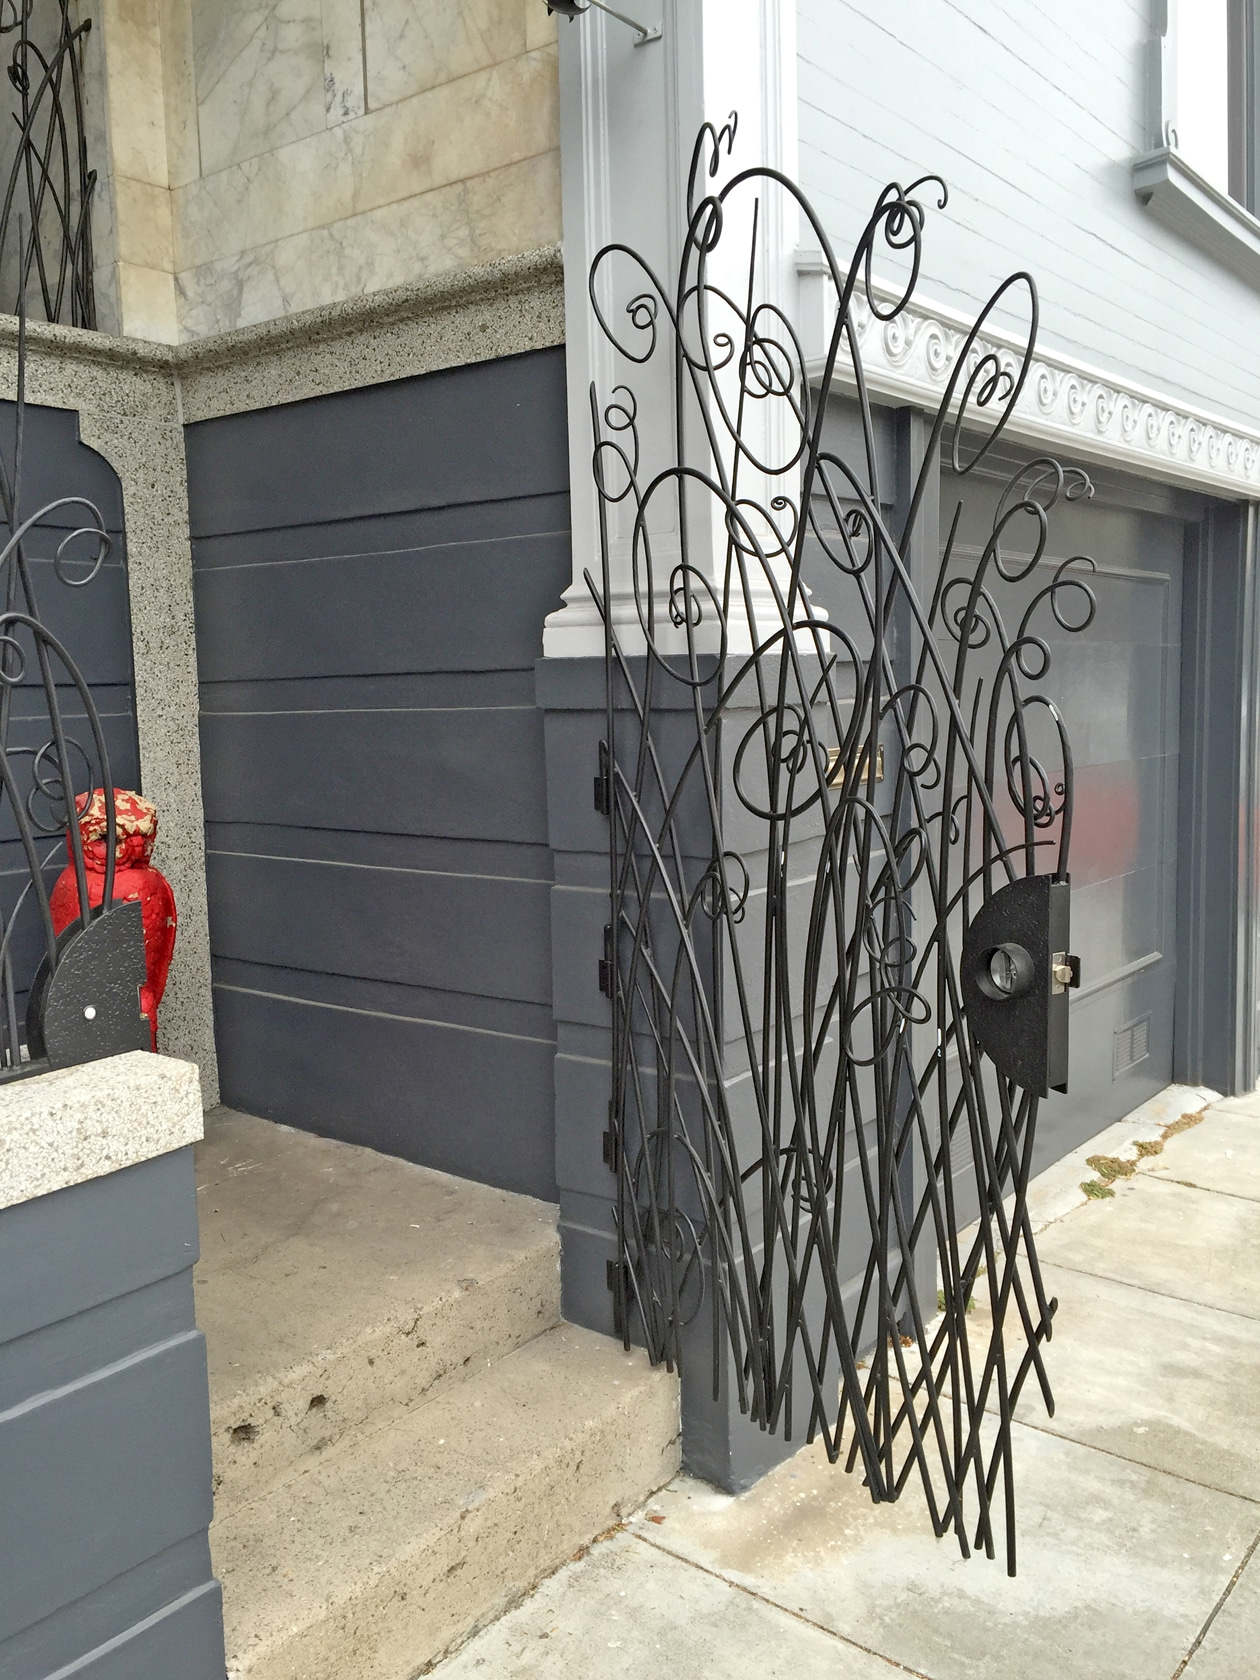 Blacksmith, Forged, Custom, Design, Daniel Hopper Design, Iron, Steel, Birds, Railing, Gate